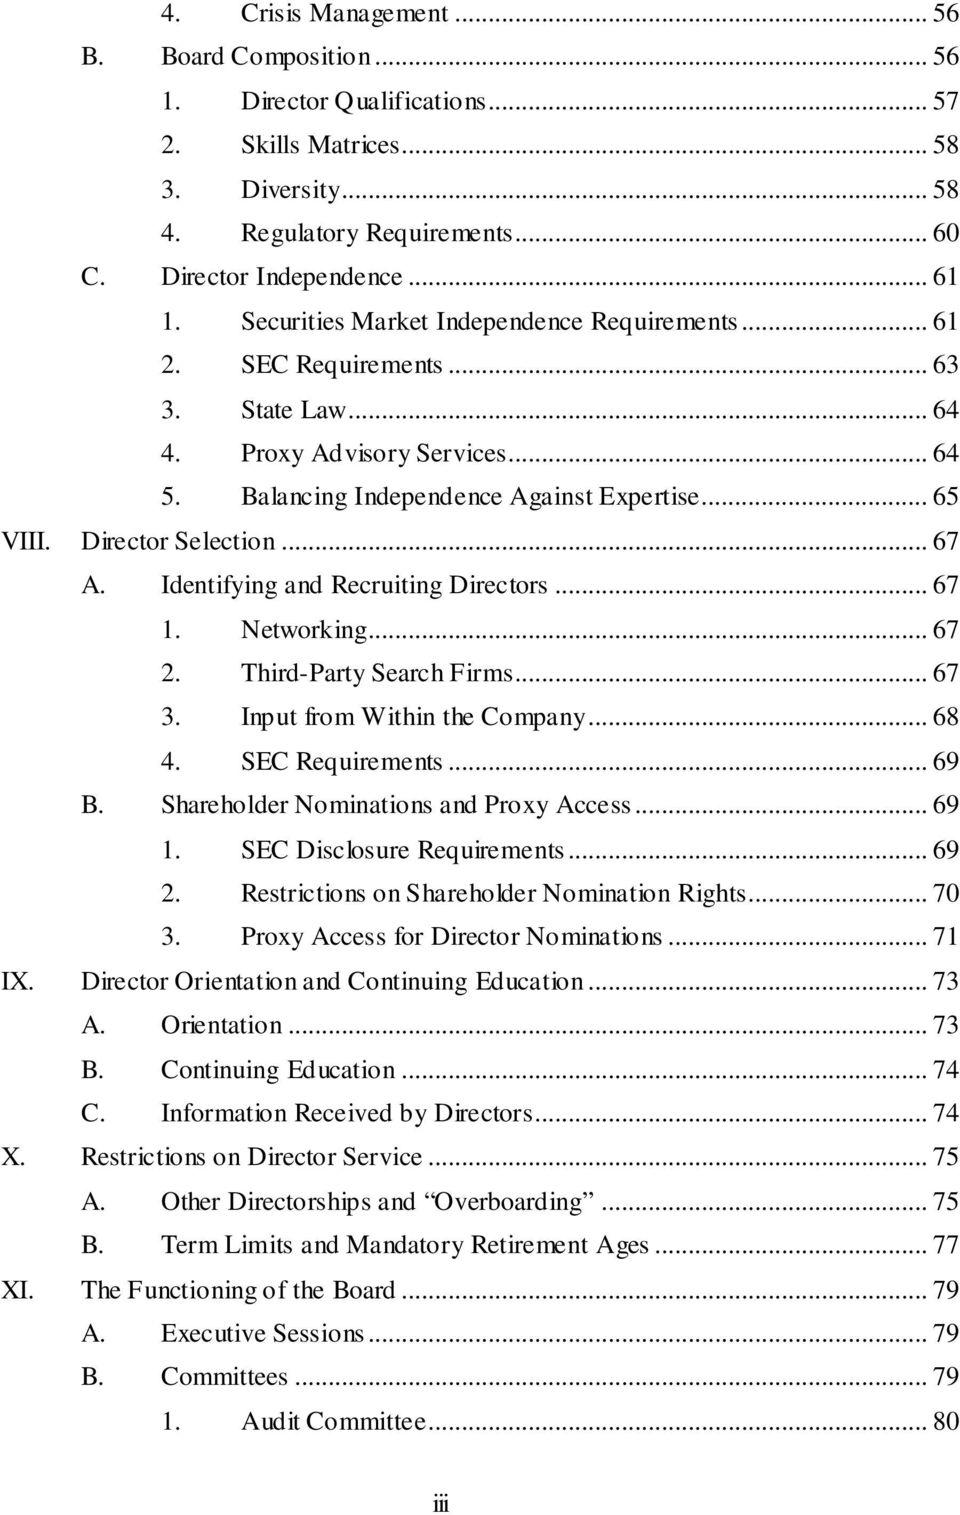 Director Selection... 67 A. Identifying and Recruiting Directors... 67 1. Networking... 67 2. Third-Party Search Firms... 67 3. Input from Within the Company... 68 4. SEC Requirements... 69 B.